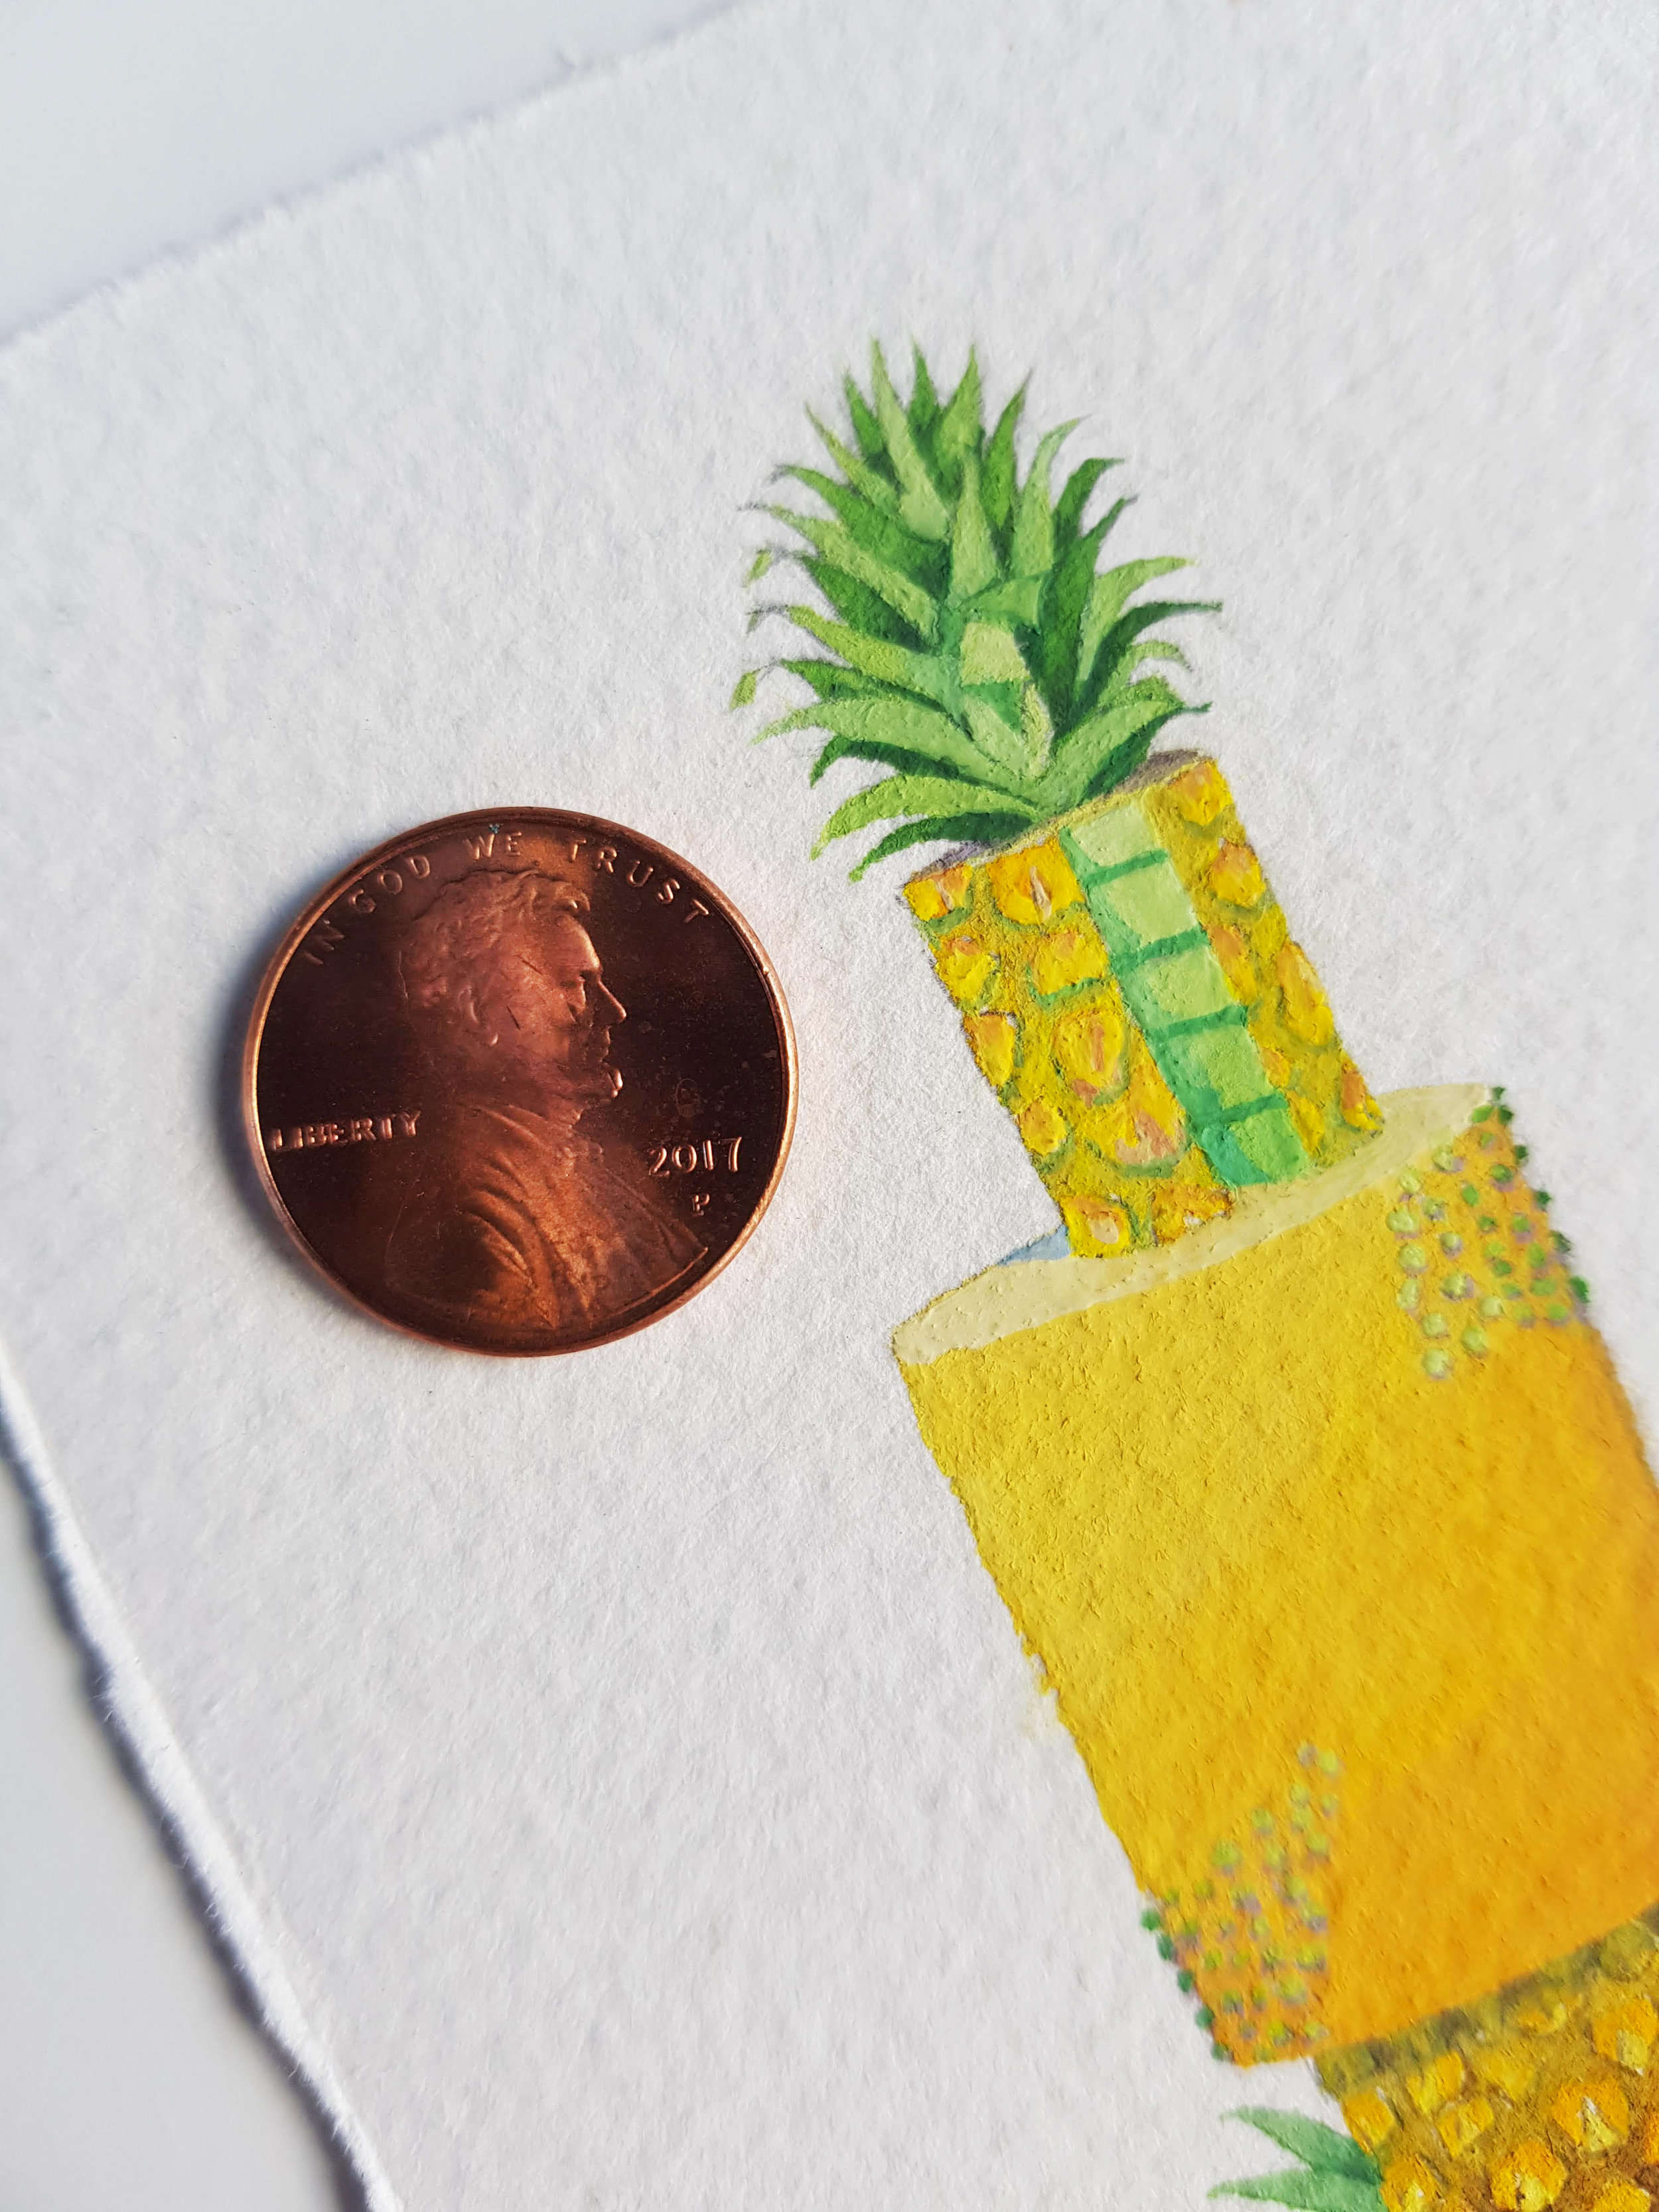 For Size Penny Pine.jpg